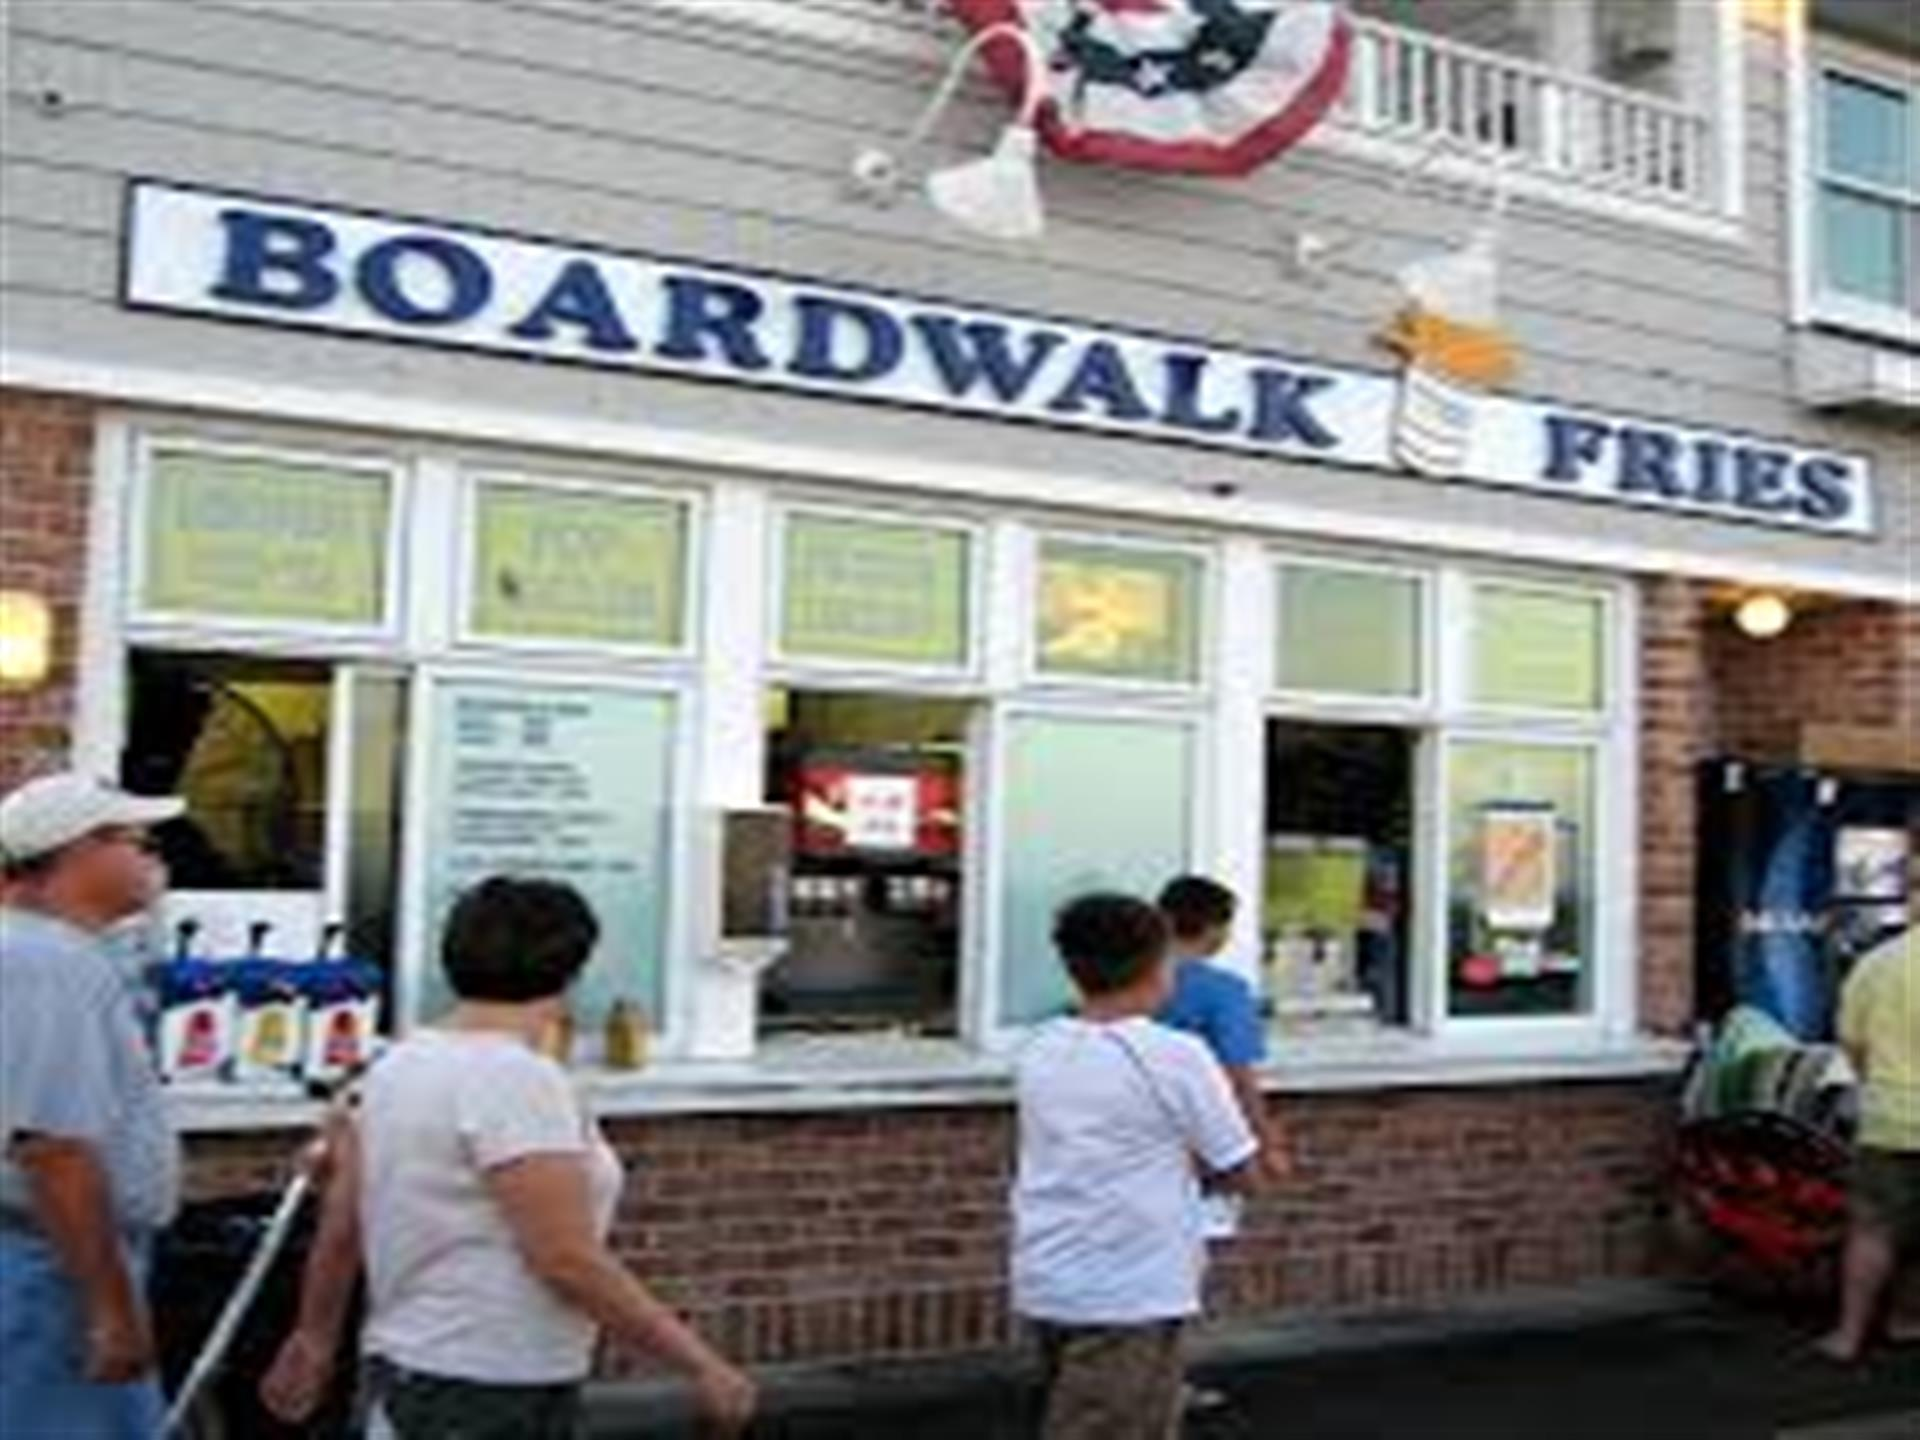 People wa;lking in front of  the Exterior of Boardwalk Fries Building